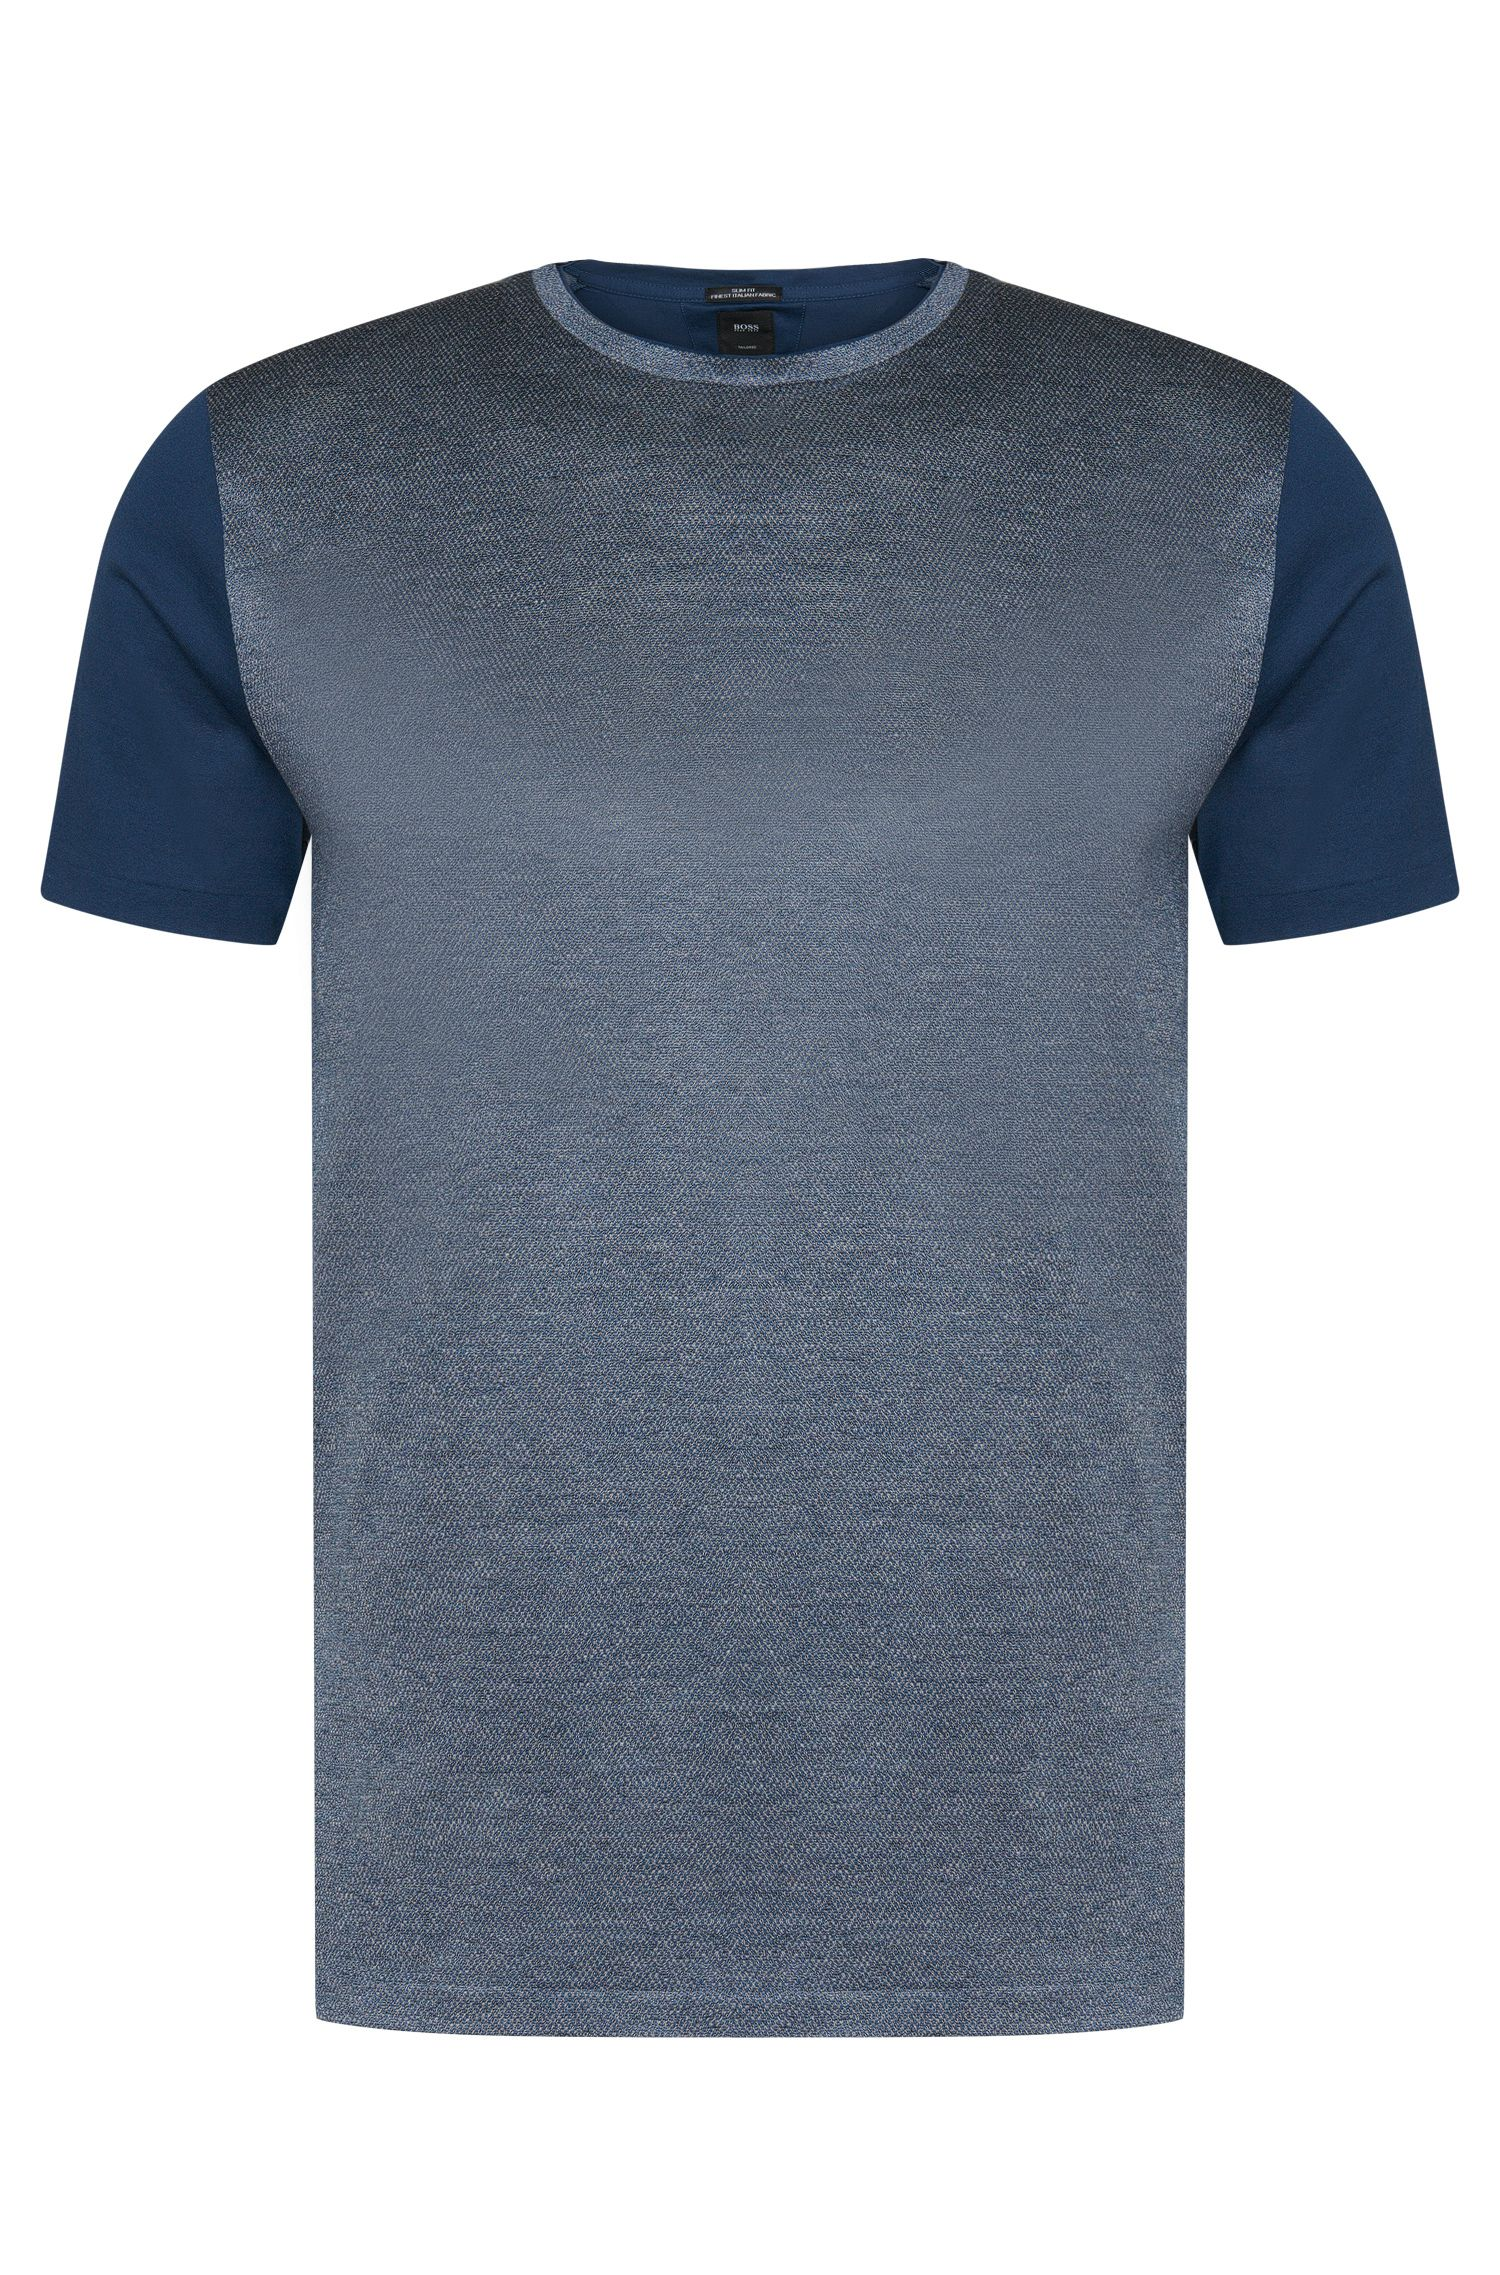 T-shirt Slim Fit Tailored en coton à motif sur le devant : « T-Tribel 20 »